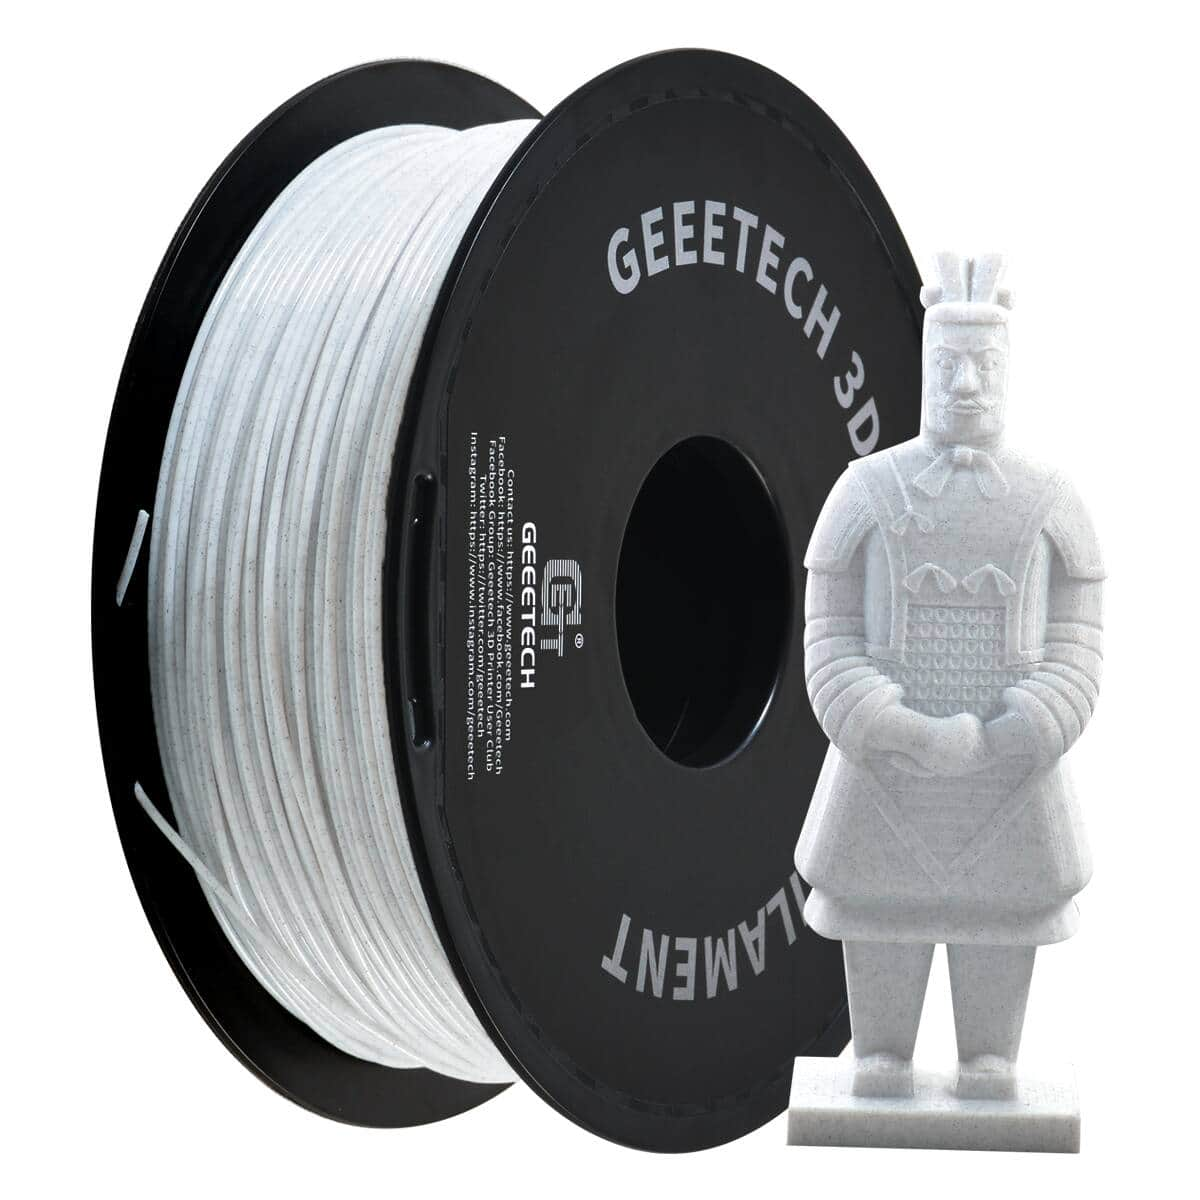 2.2lbs Geeetech Silk PLA Filament 1.75mm from $17.58 + Free Shipping w/ Amazon Prime or Orders $25+